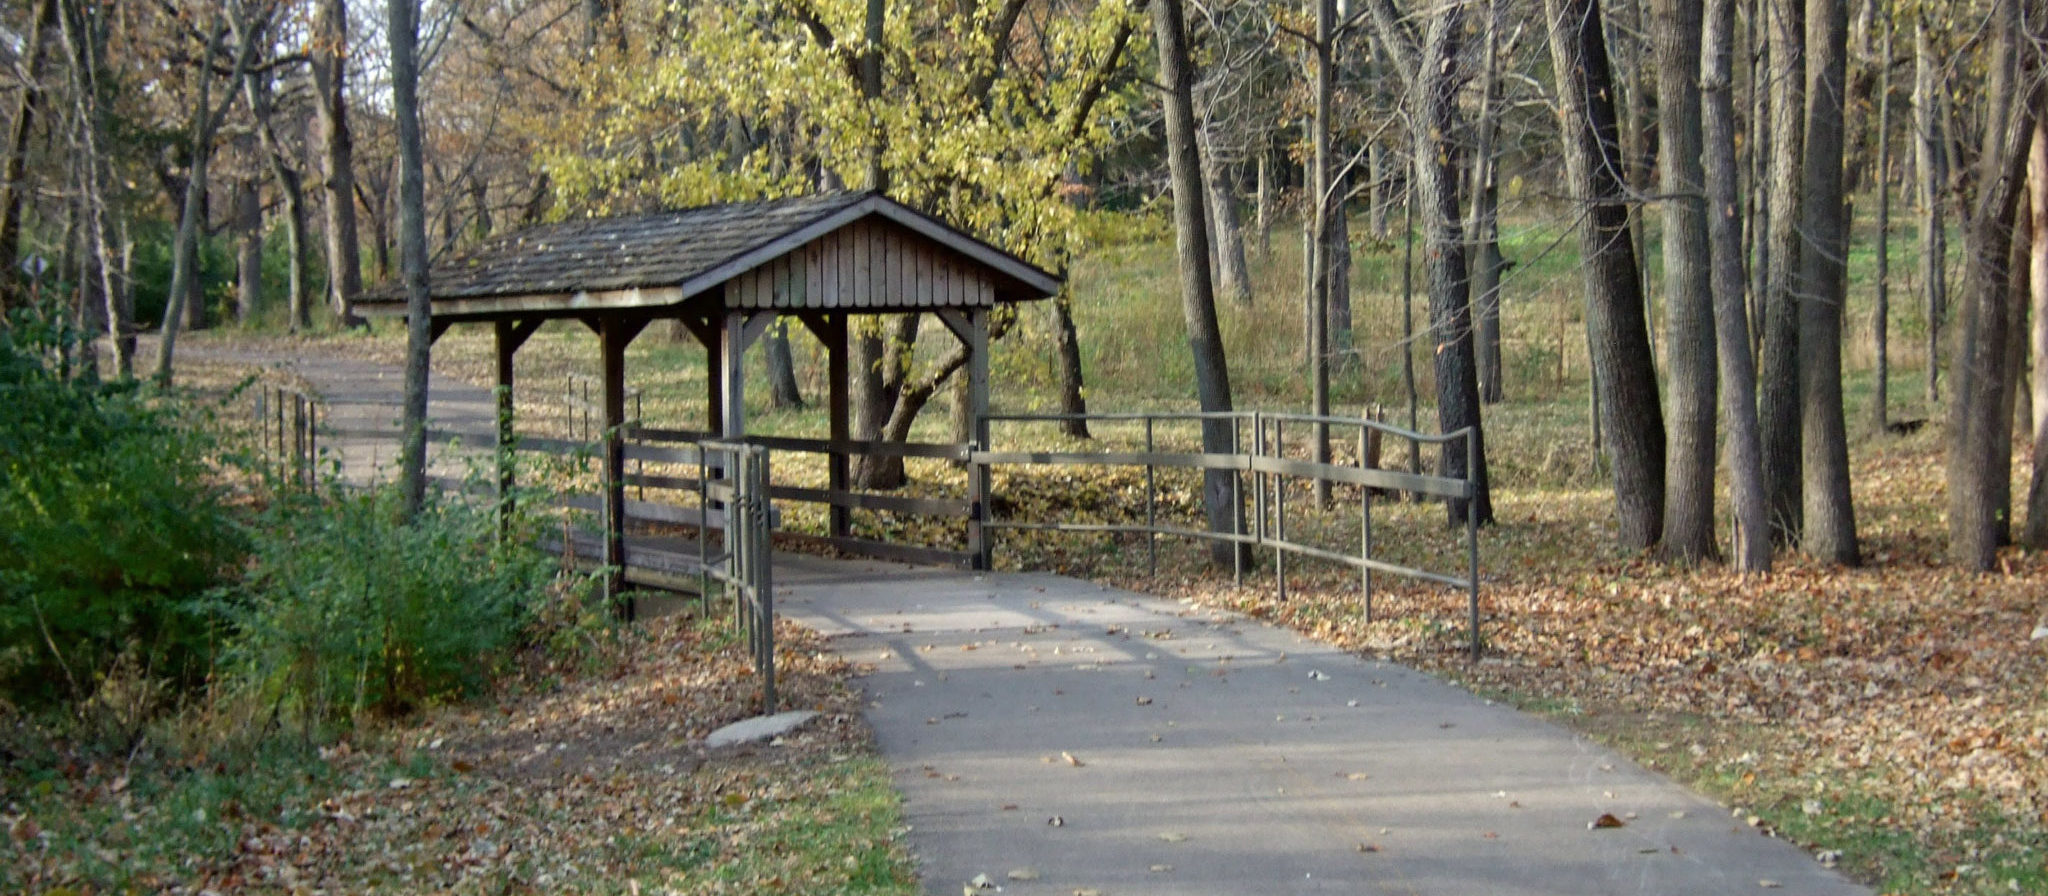 Enjoy the pristine trails found at Kankakee River State Park, where you will find places for hiking, hunting and more.